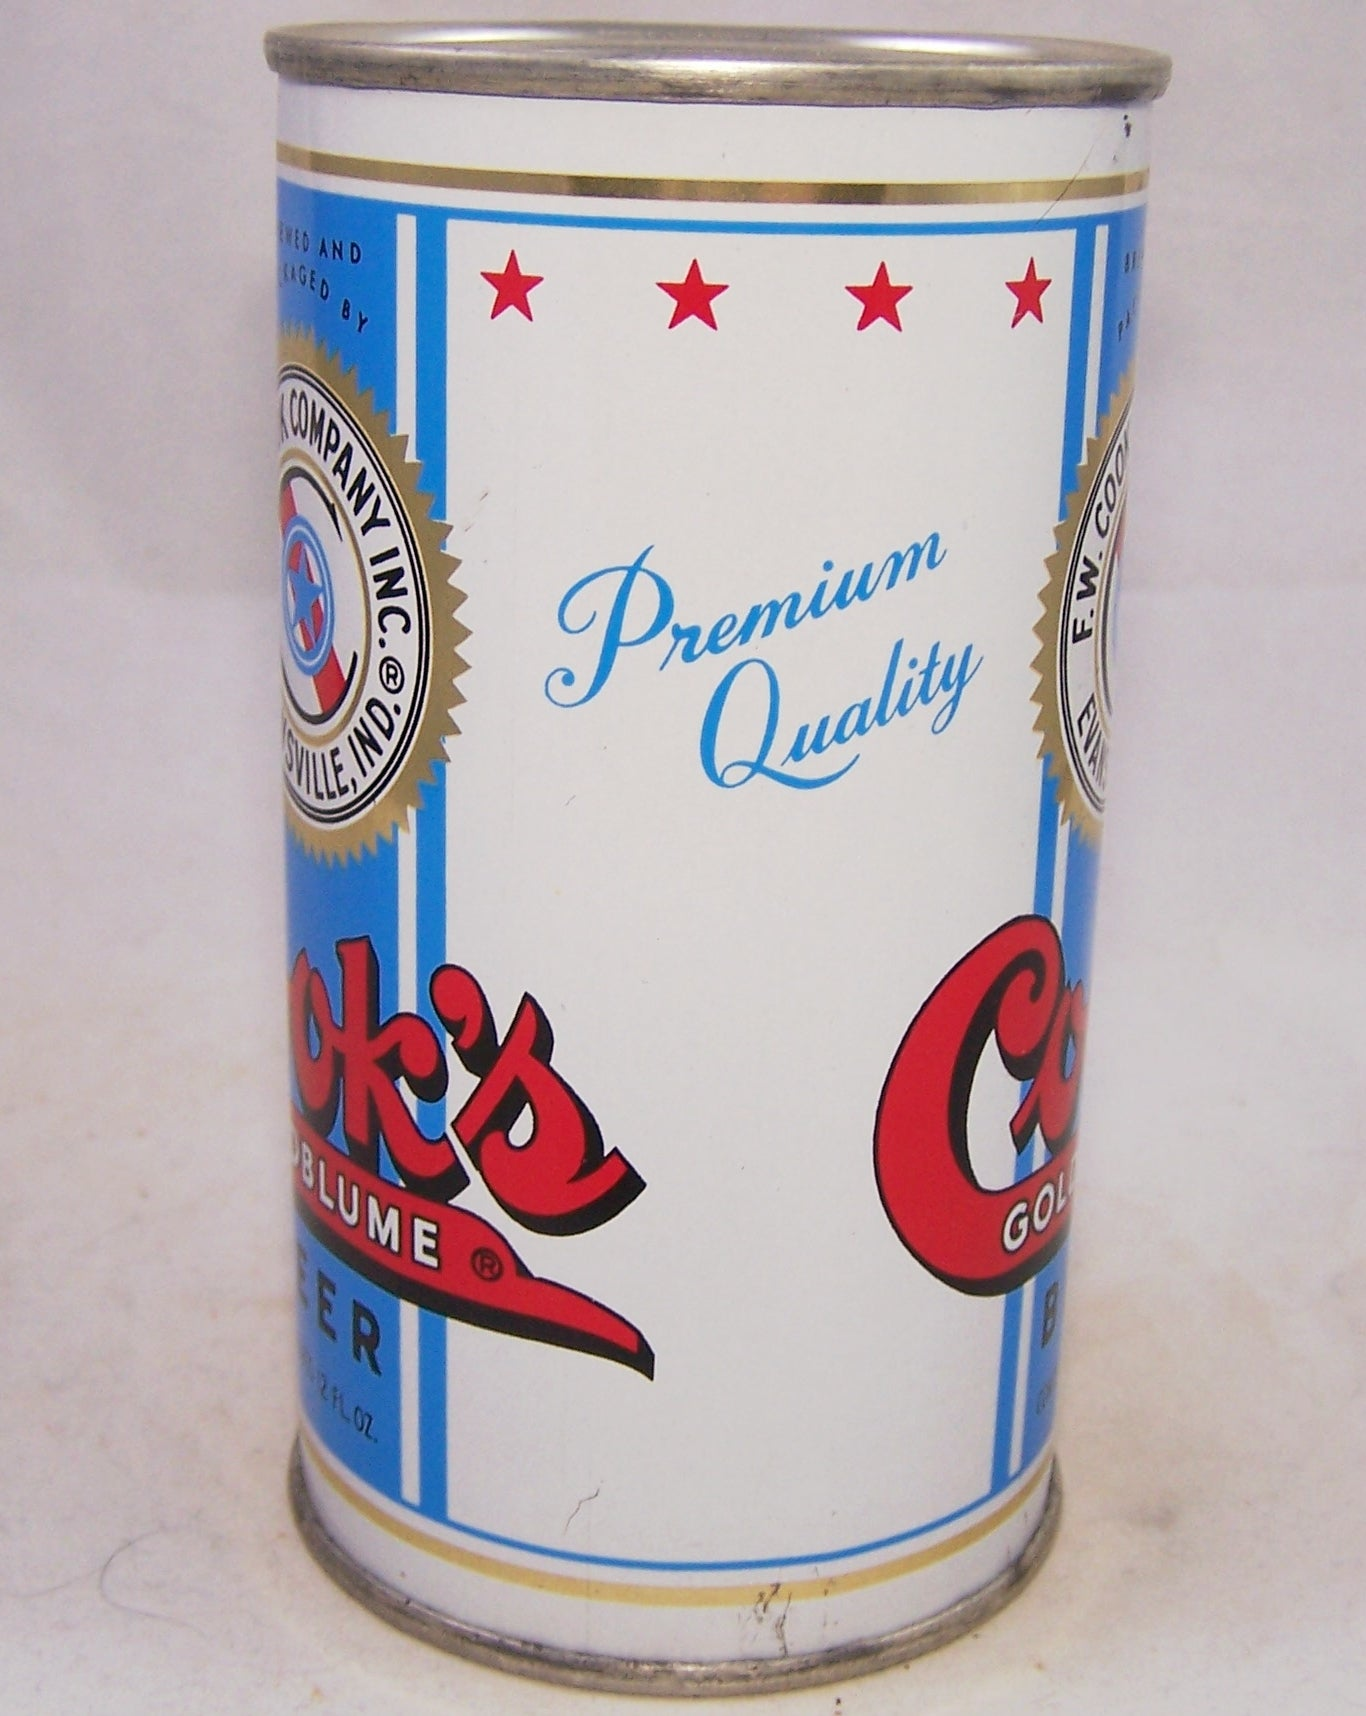 Cook's Goldblume Beer, USBC 51-10, Rolled can, Grade 1/1+ Sold